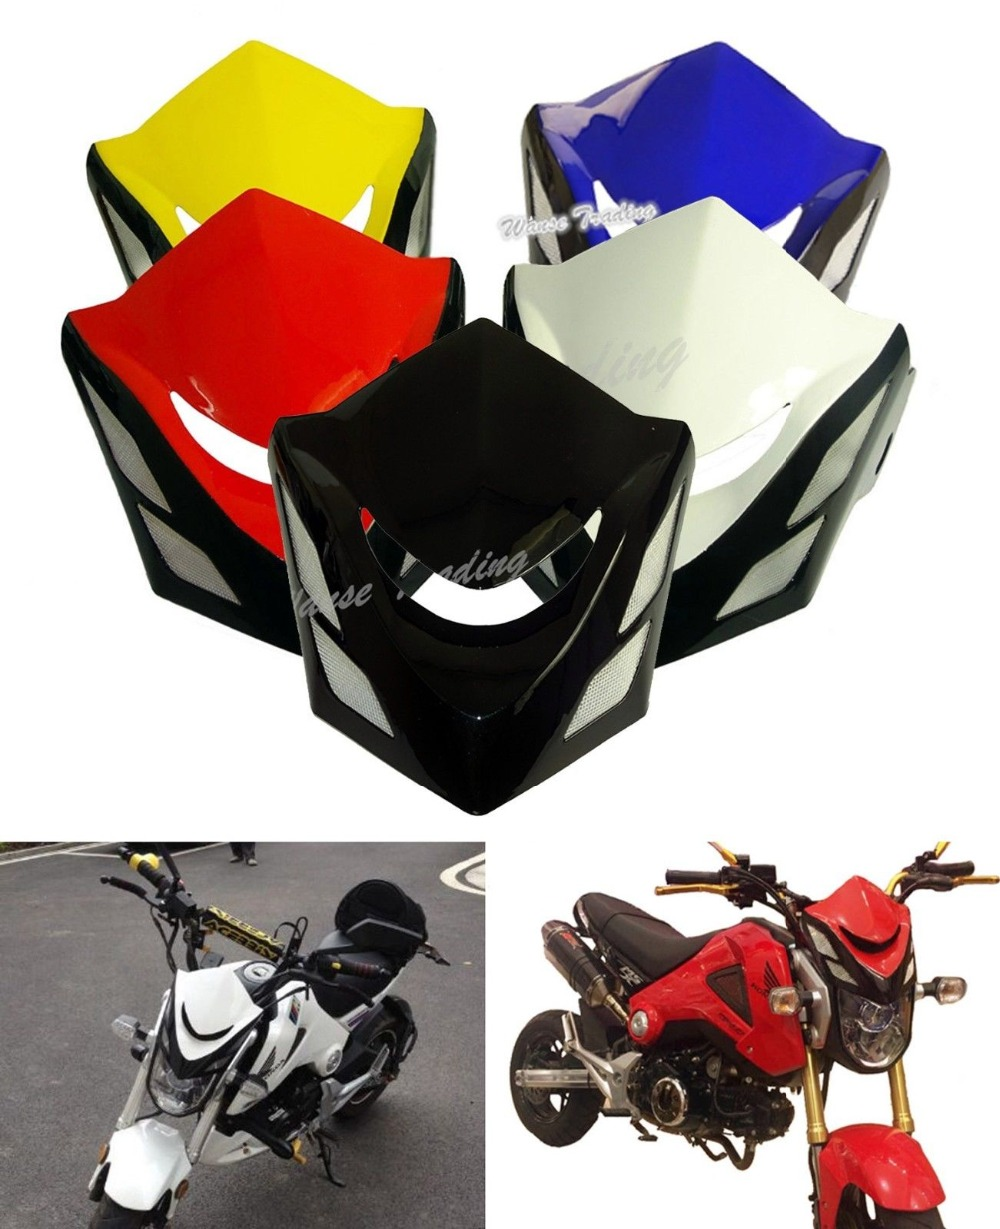 Front Upper Cowl Headlight Headlamp Head Light Lamp Cover Wind Shield Screen White For HONDA Grom MSX 125 MSX125 2013 2014 2015 motorcycle scooter electroplate front headlight headlamp head light lamp small mask cap cover shield large for yamaha bws x 125